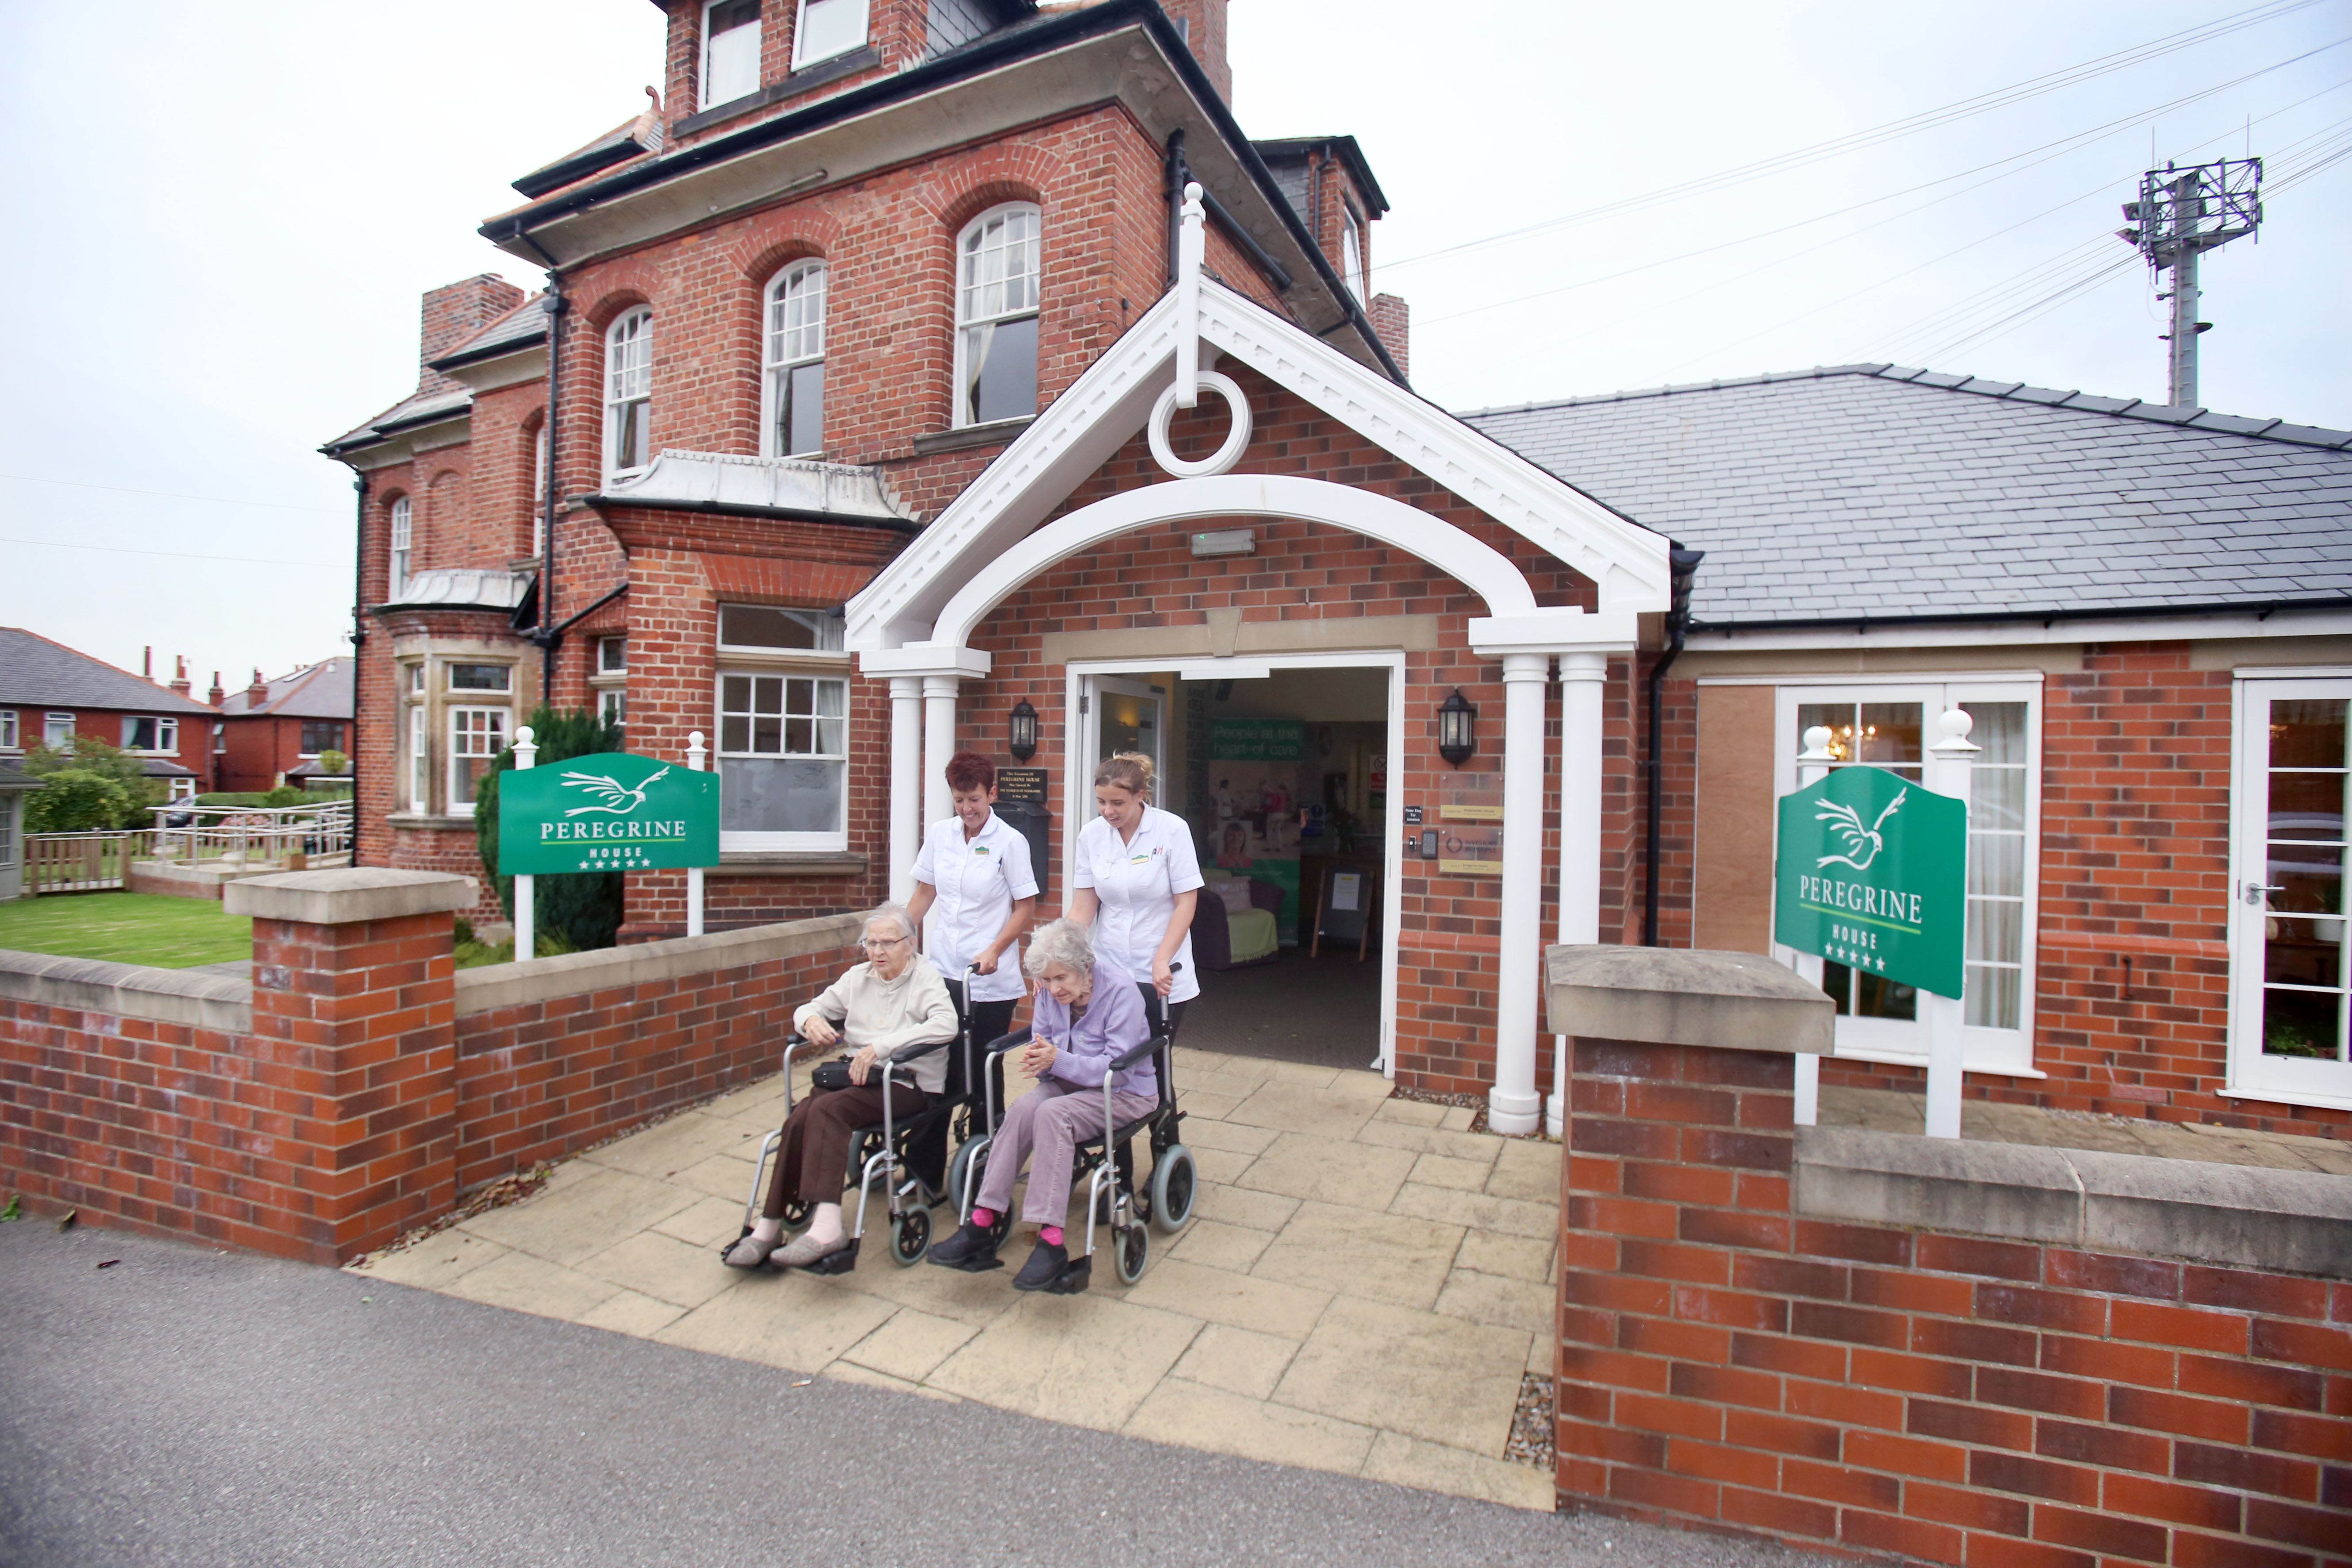 Residents going for an outing with carers